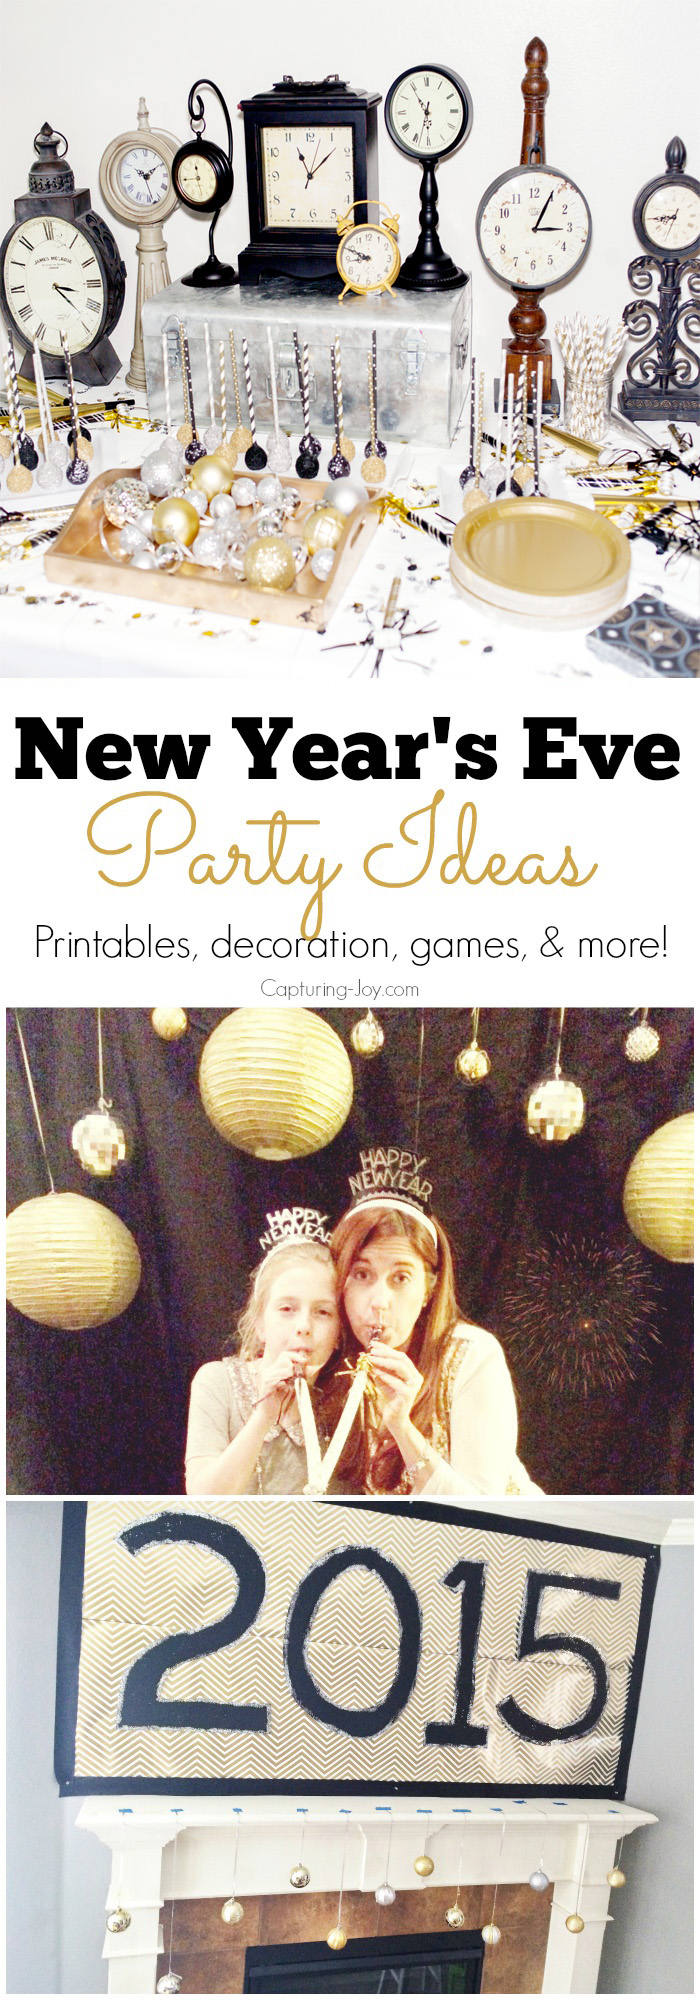 New Years Time Capsule Printable Questionnaire For Kids: New Years Eve Photo Booth Free Printables